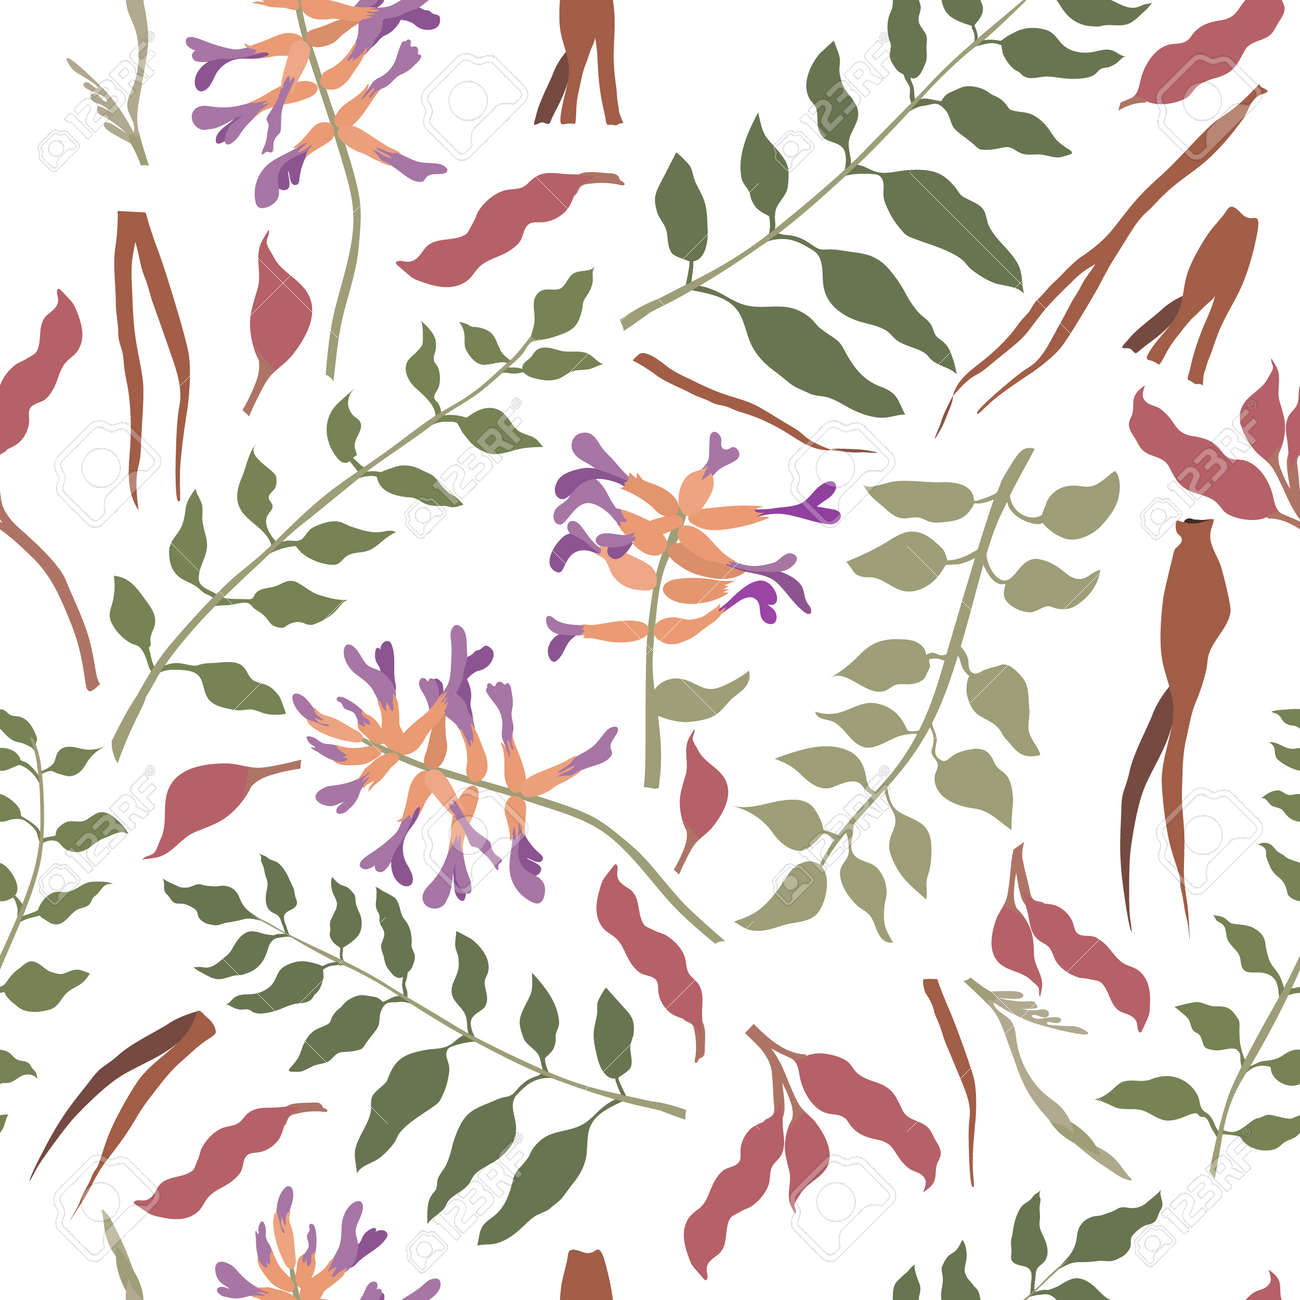 Seamless Pattern with Chinese liquorice colored Parts. Leaves, Flower Heads, Roots and Beans Placed Chaotically on White Backdrop. Ideal for Magazine, Recipe book, Poster, Card, Menu cover etc. - 166149137